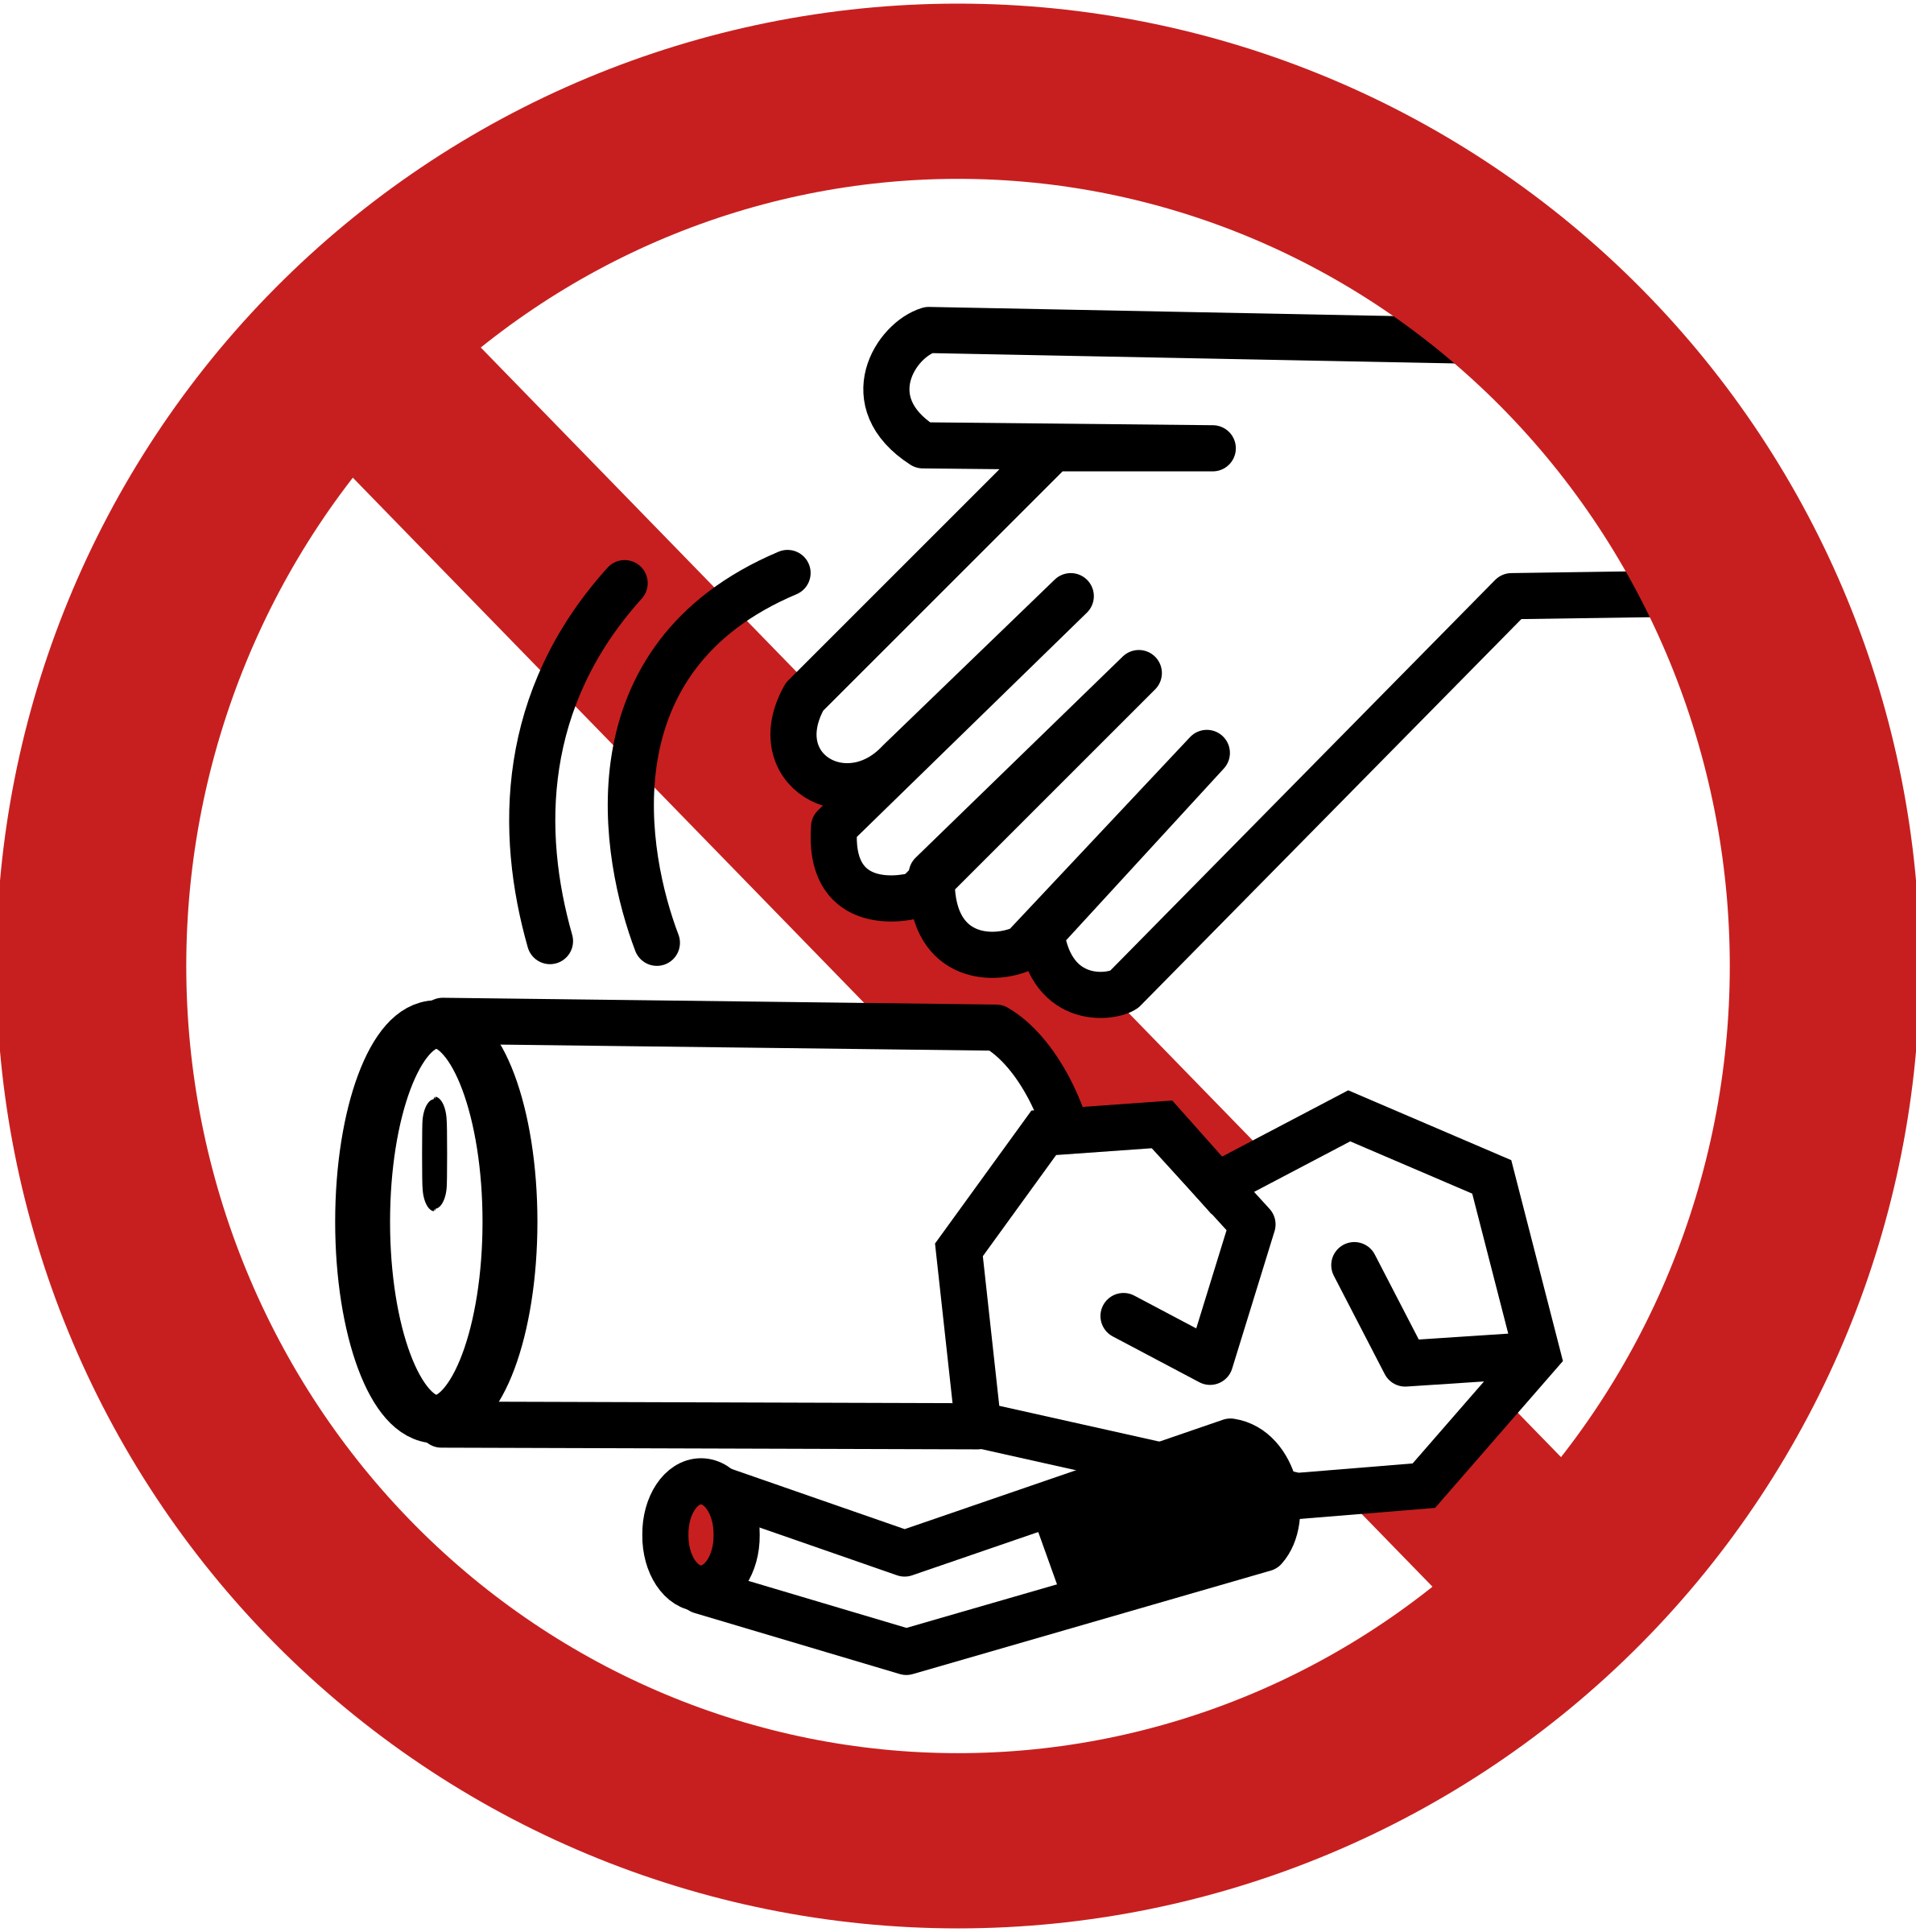 E clipart litter. No littering sign big